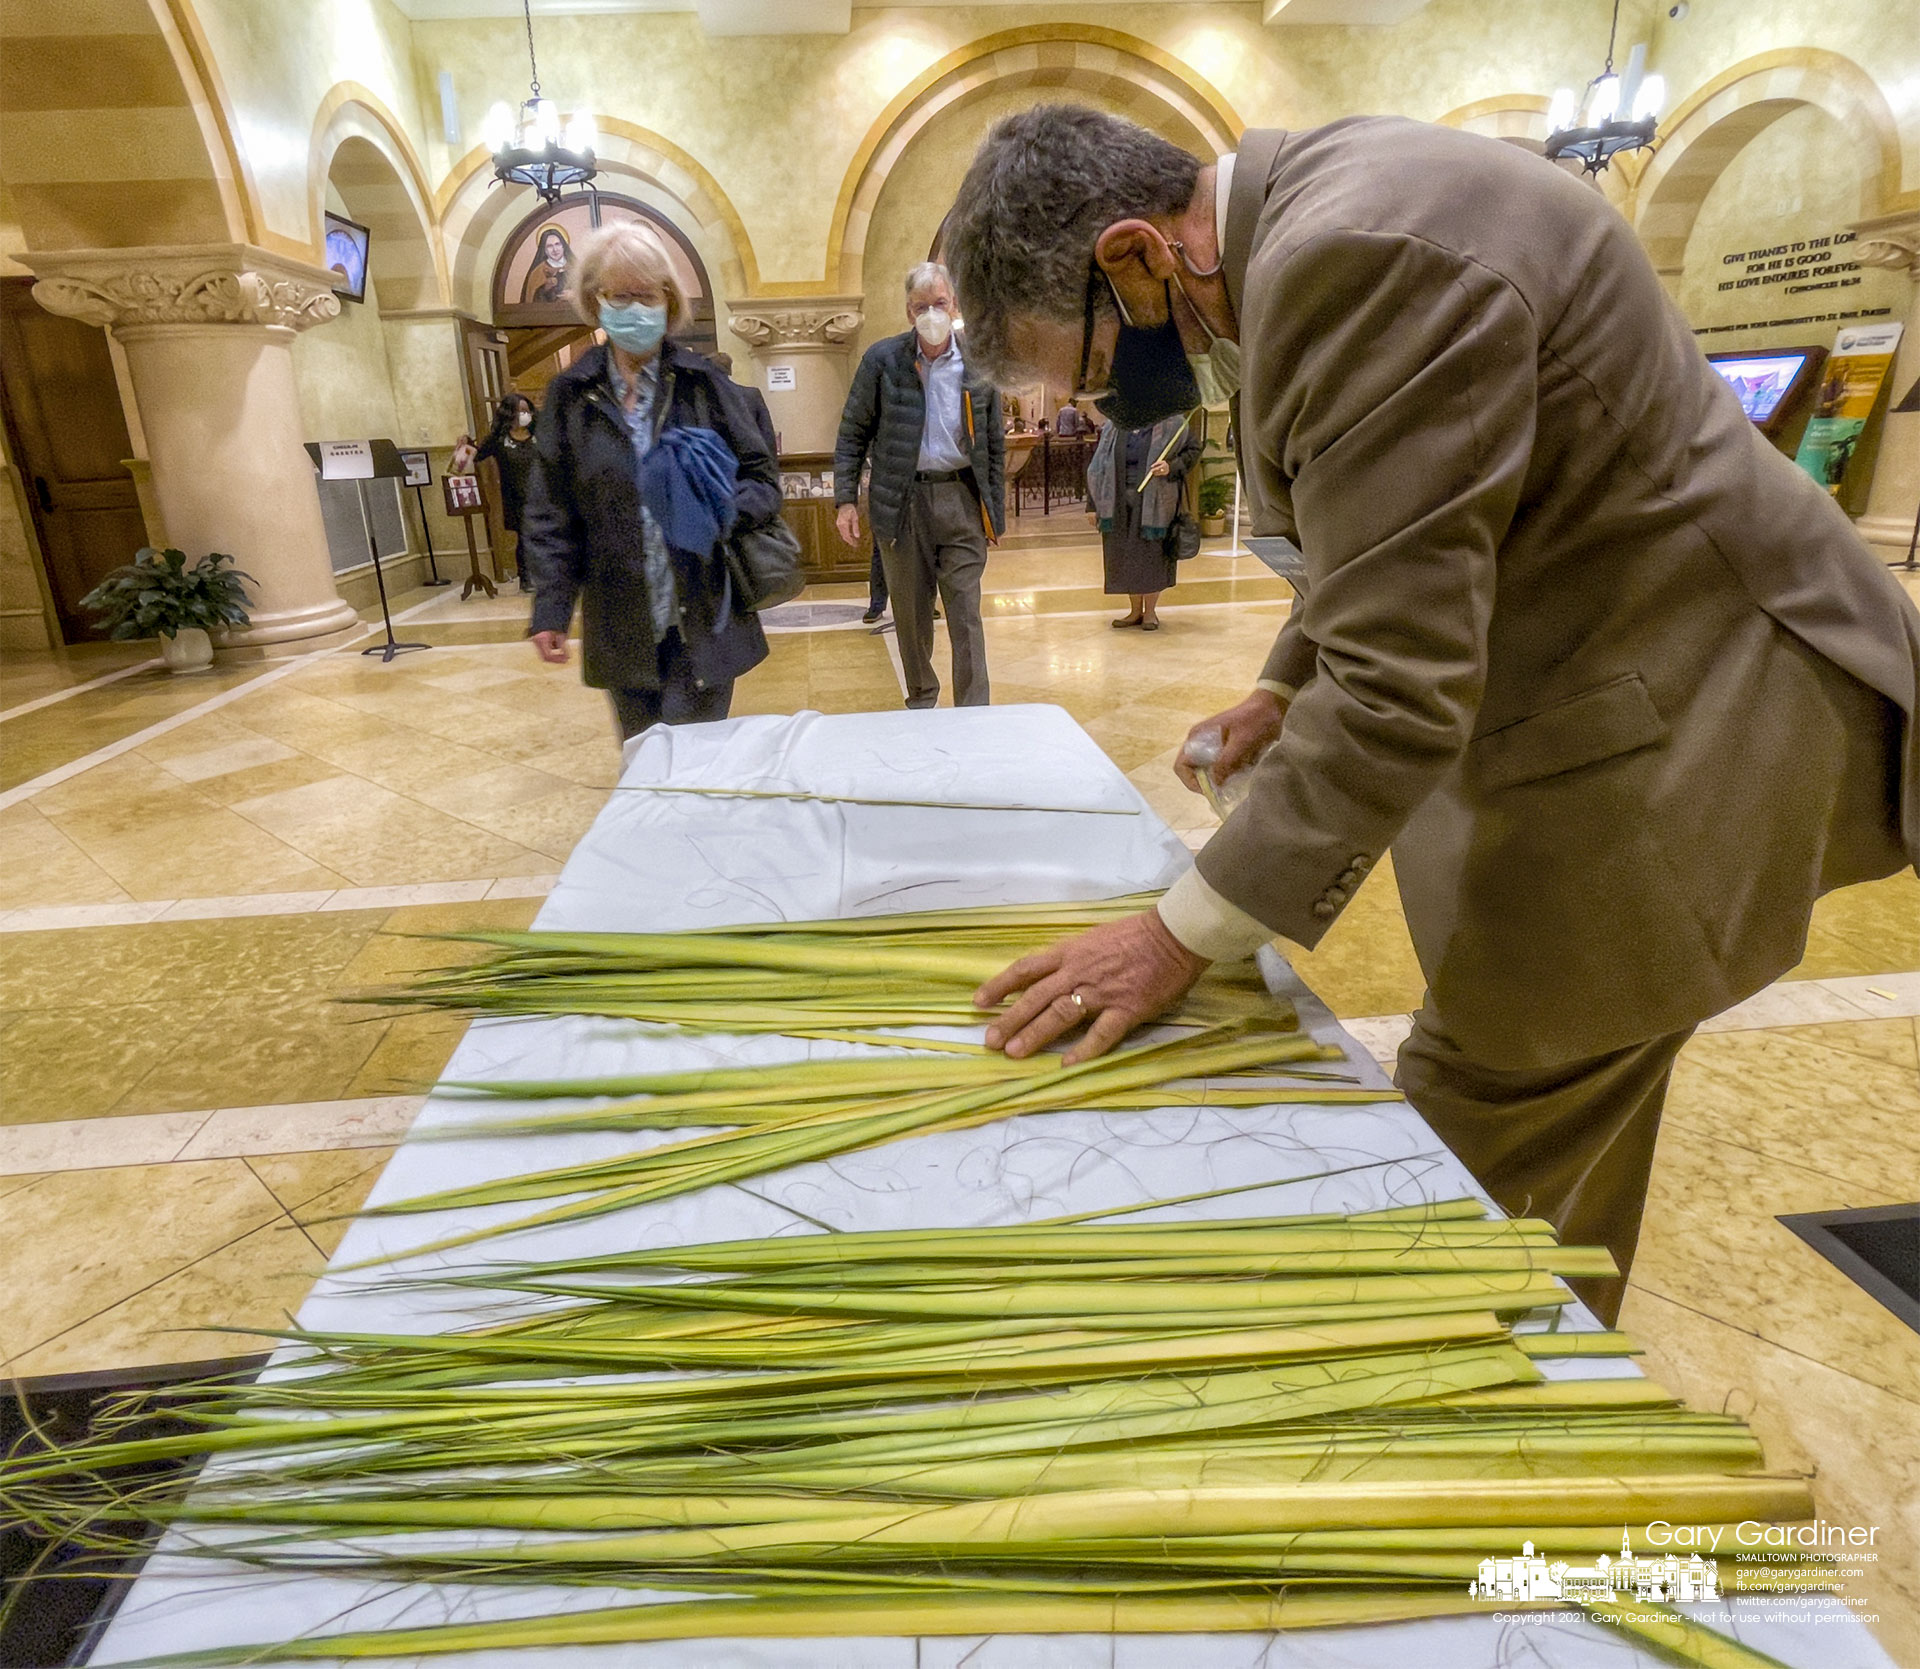 An usher at St. Paul the Apostle Catholic Church separates palm fronds for parishioners attending Palm Sunday Mass at the Westerville, Ohio church. My Final Photo for March 28, 2021.